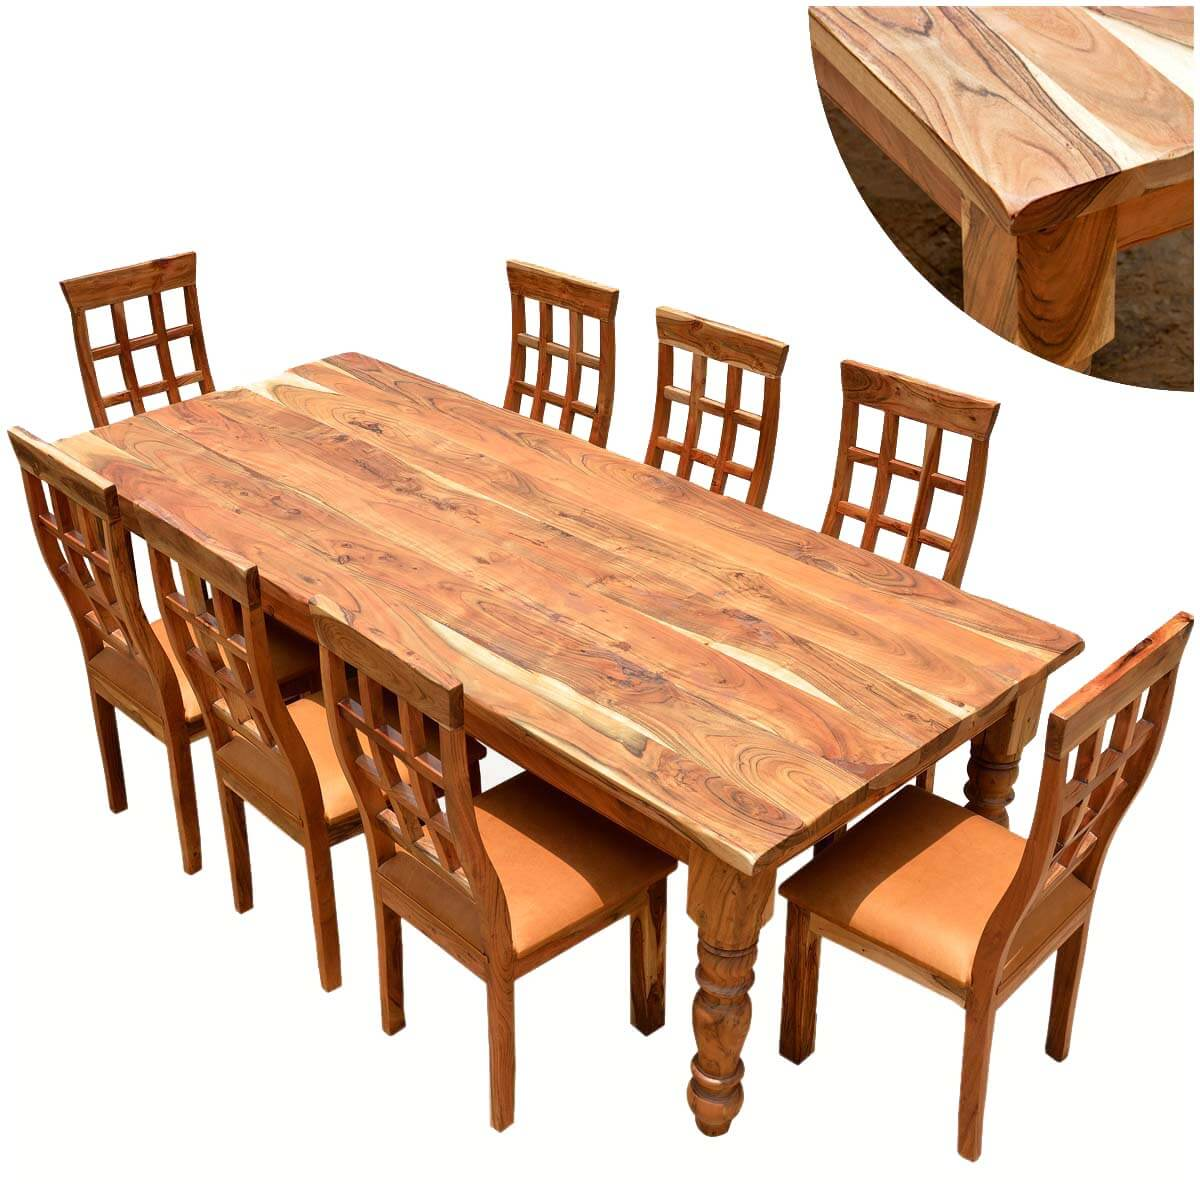 Rustic furniture farmhouse solid wood dining table chair set for Wood dining table set